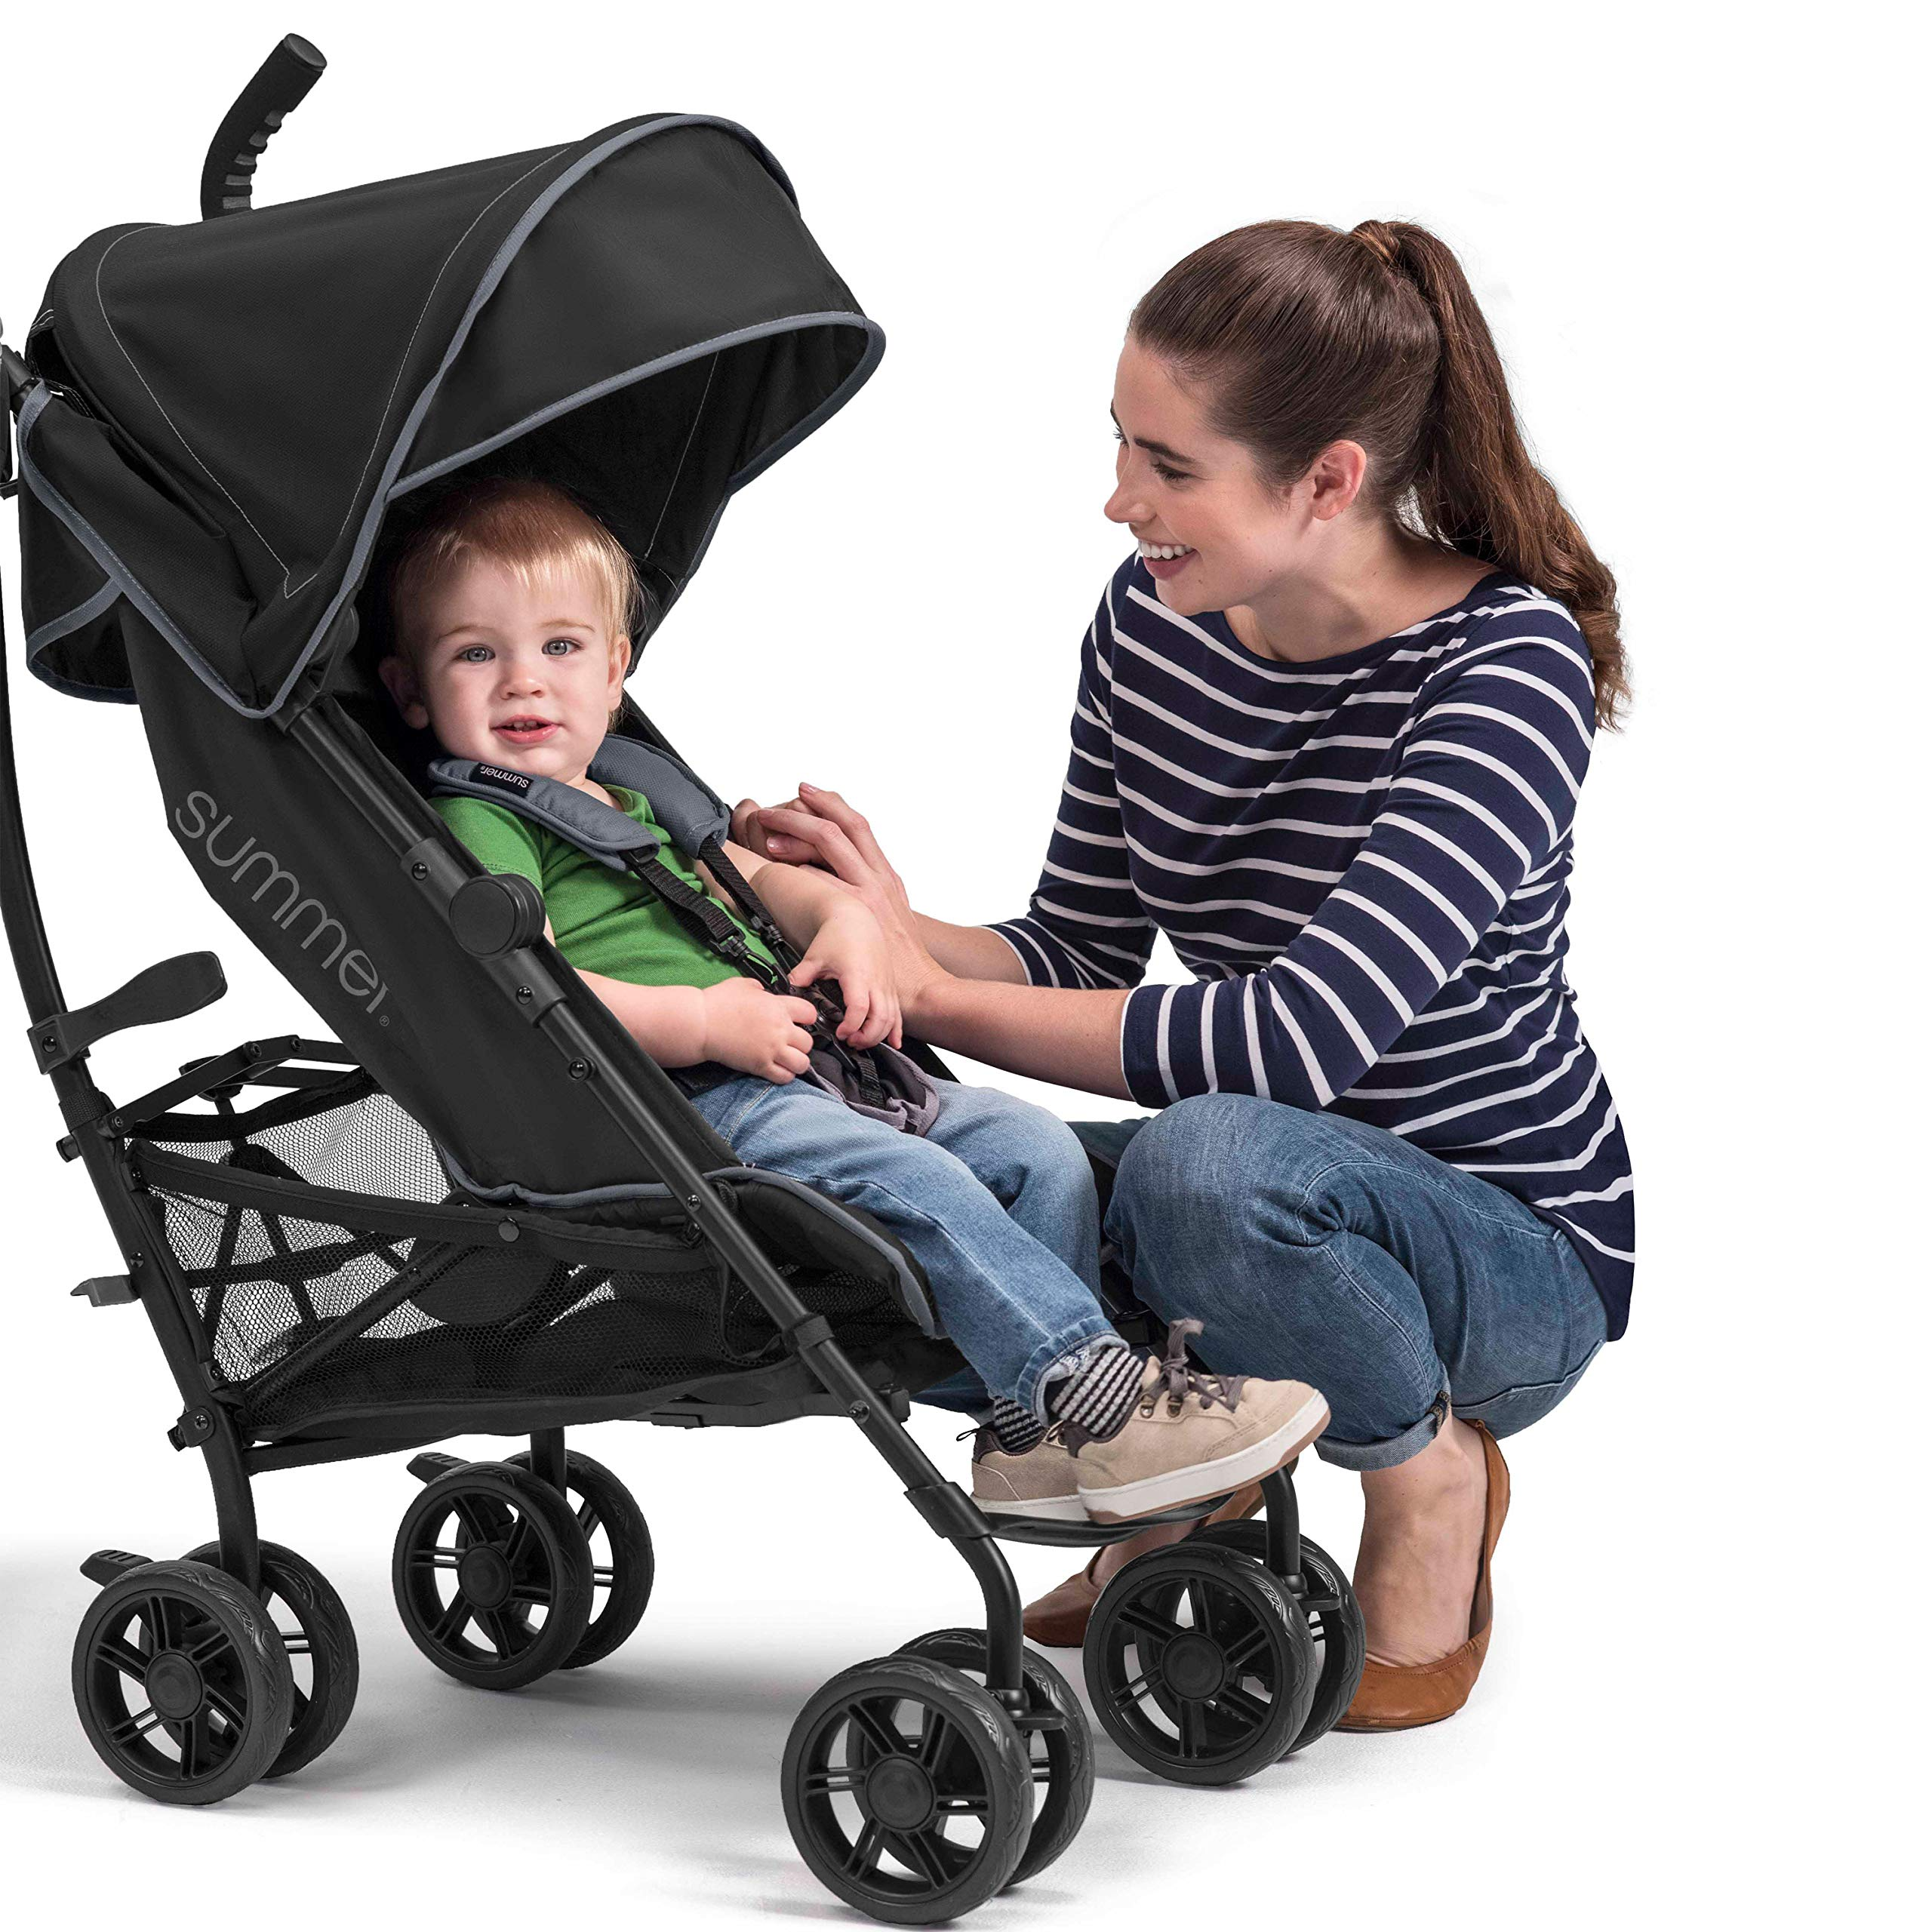 Summer 3Dlite+ Convenience Stroller, Matte Black - Lightweight Umbrella Stroller with Oversized Canopy, Extra-Large Storage and Compact Fold by Summer Infant (Image #9)